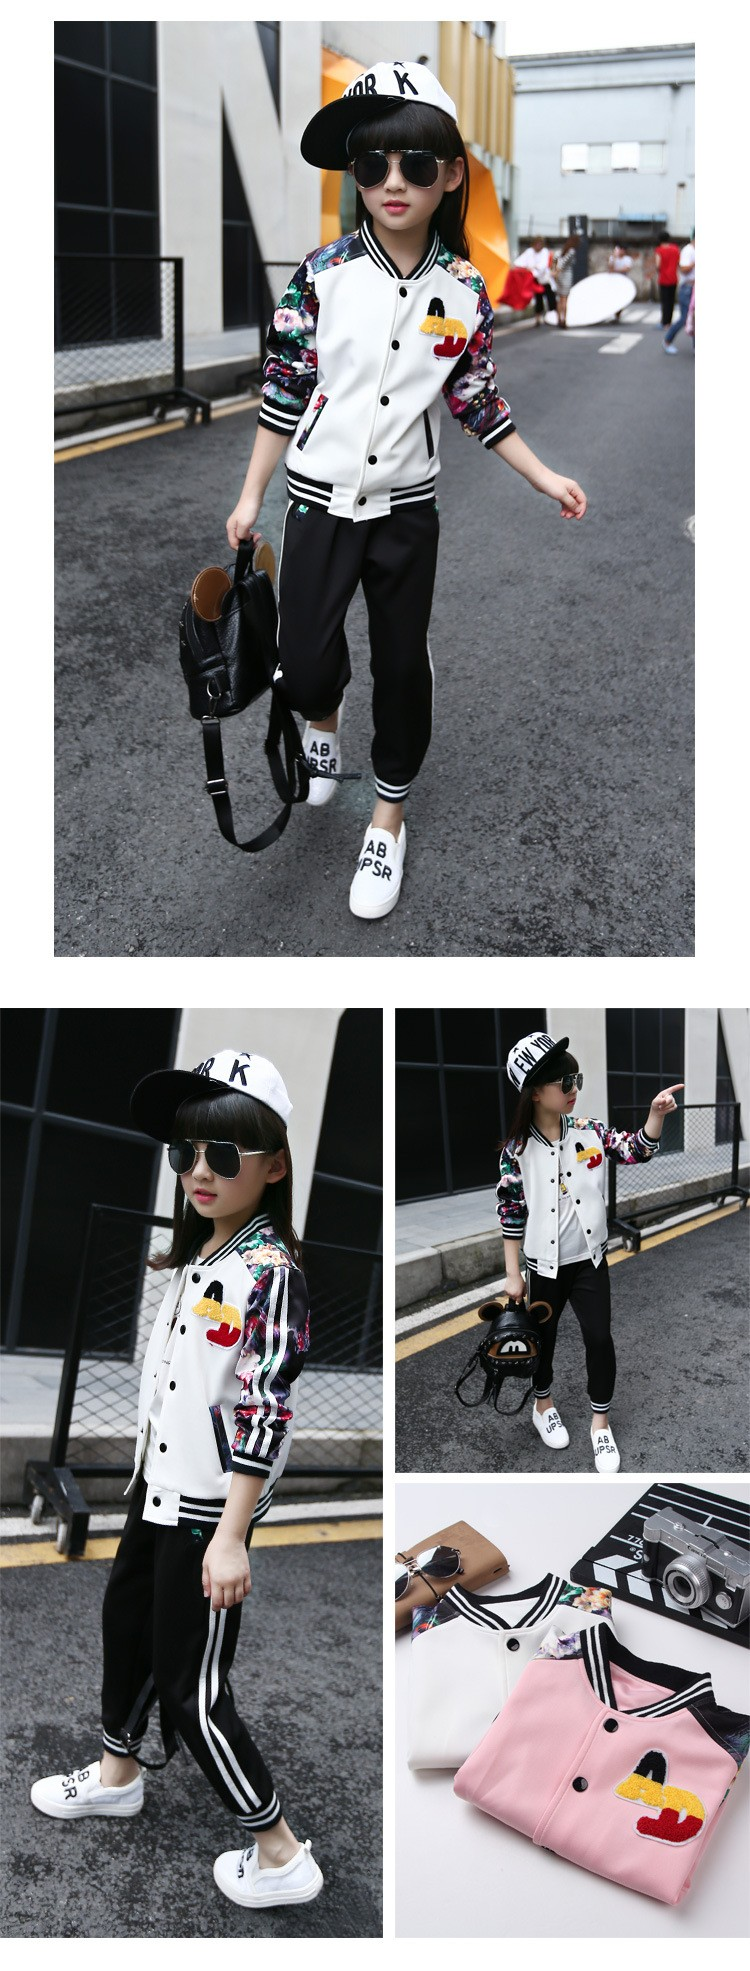 flowers printed autumn tracksuit suits kids autumn pants sports girls clothes set girls outfits baseball jackets tops pants active clothes suits for girls  6 7 8 9 10 11 12 13 14 15 16 years old little teenage big girls girls boutique cloth (5)